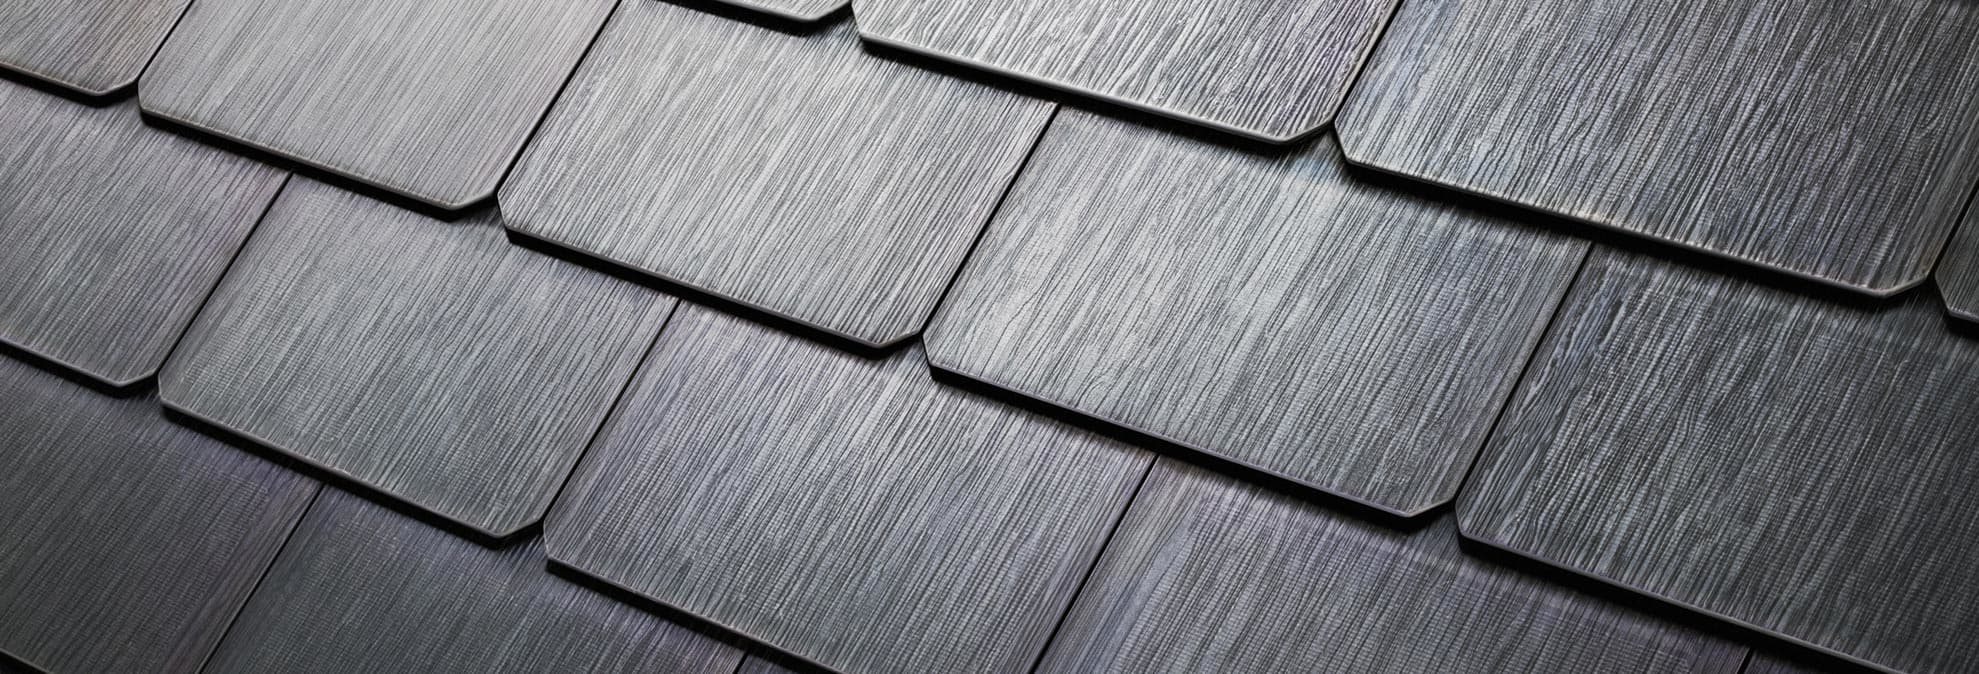 Tesla Solar Roof Order >> Tesla Solar Roof 9 Things You Don T Realize Until You Own One For A